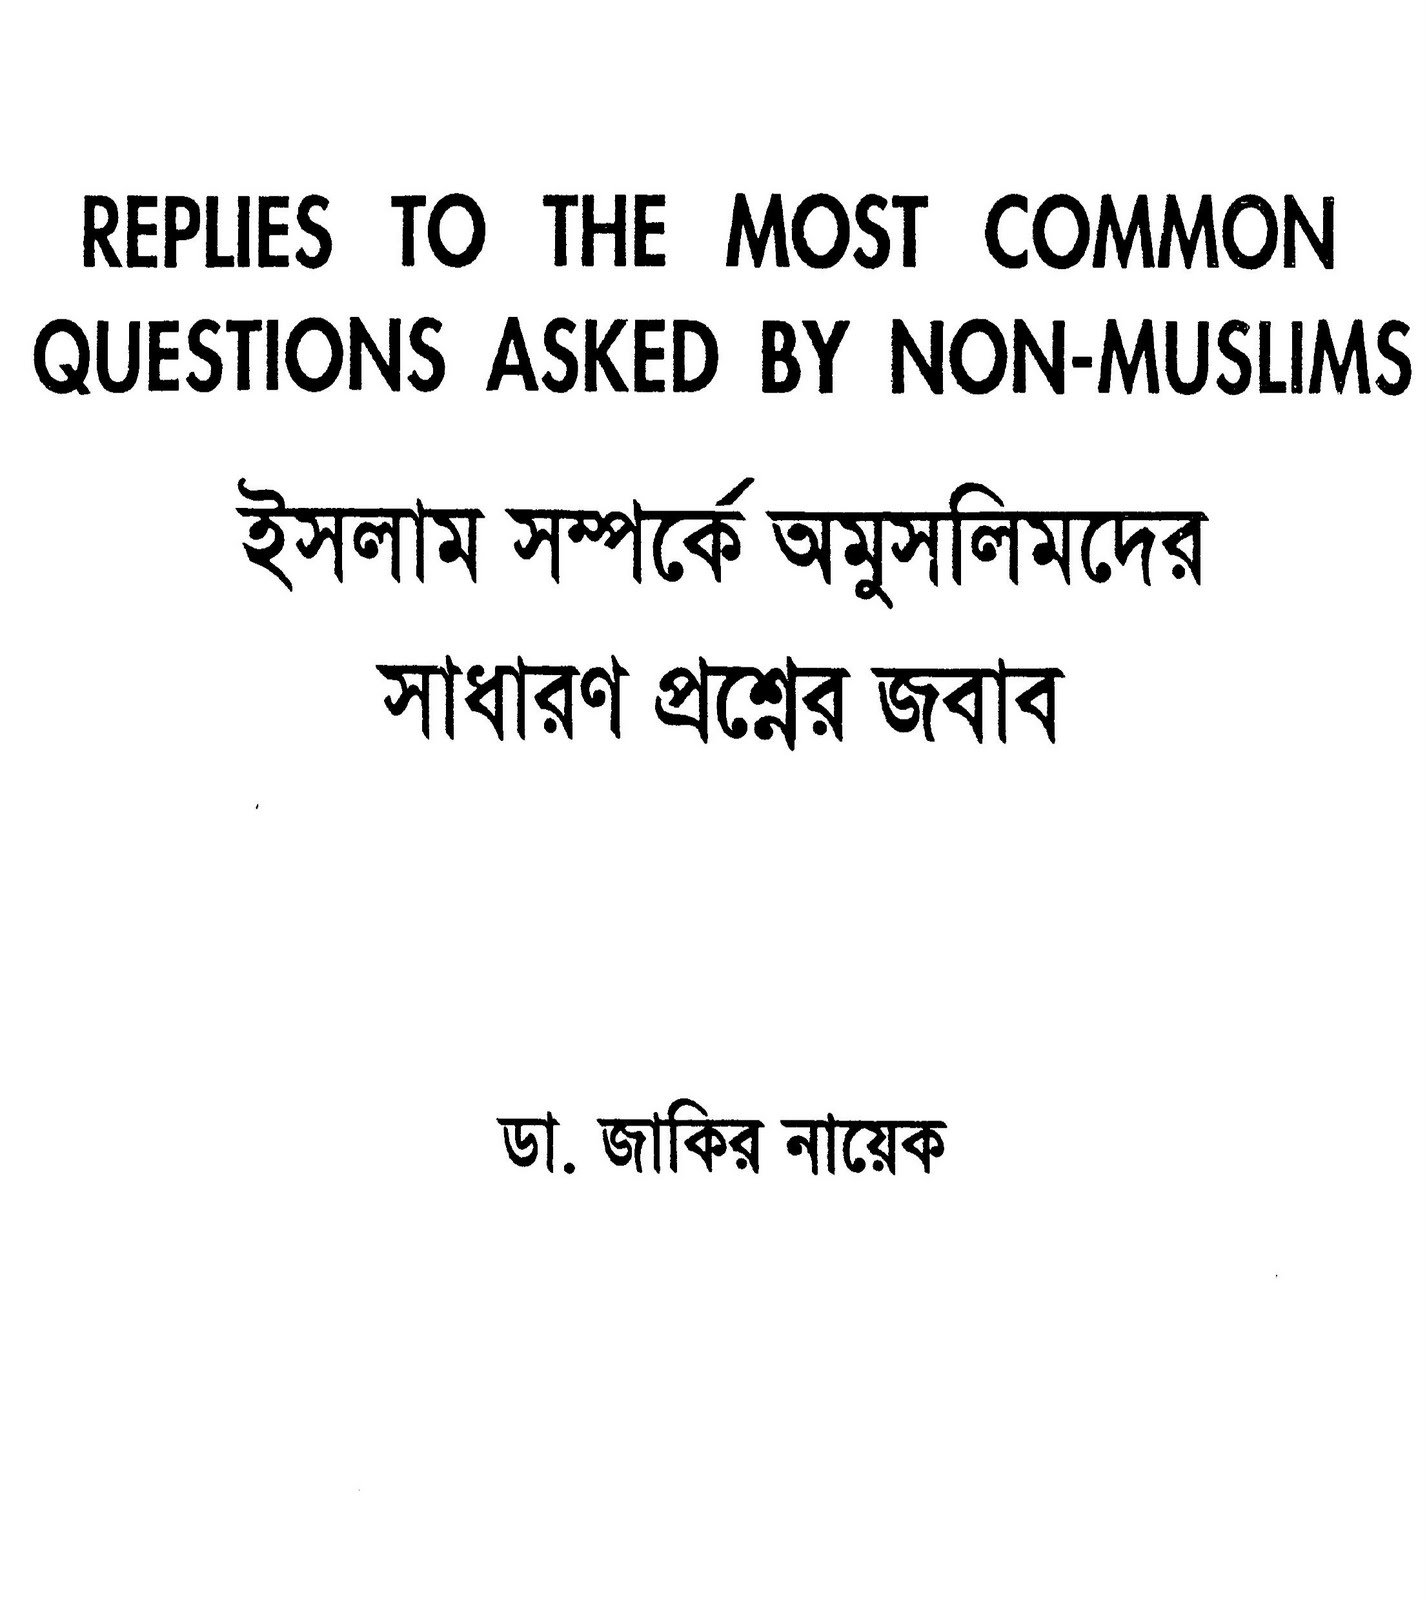 Replies to the most common questions asked by the non Muslims